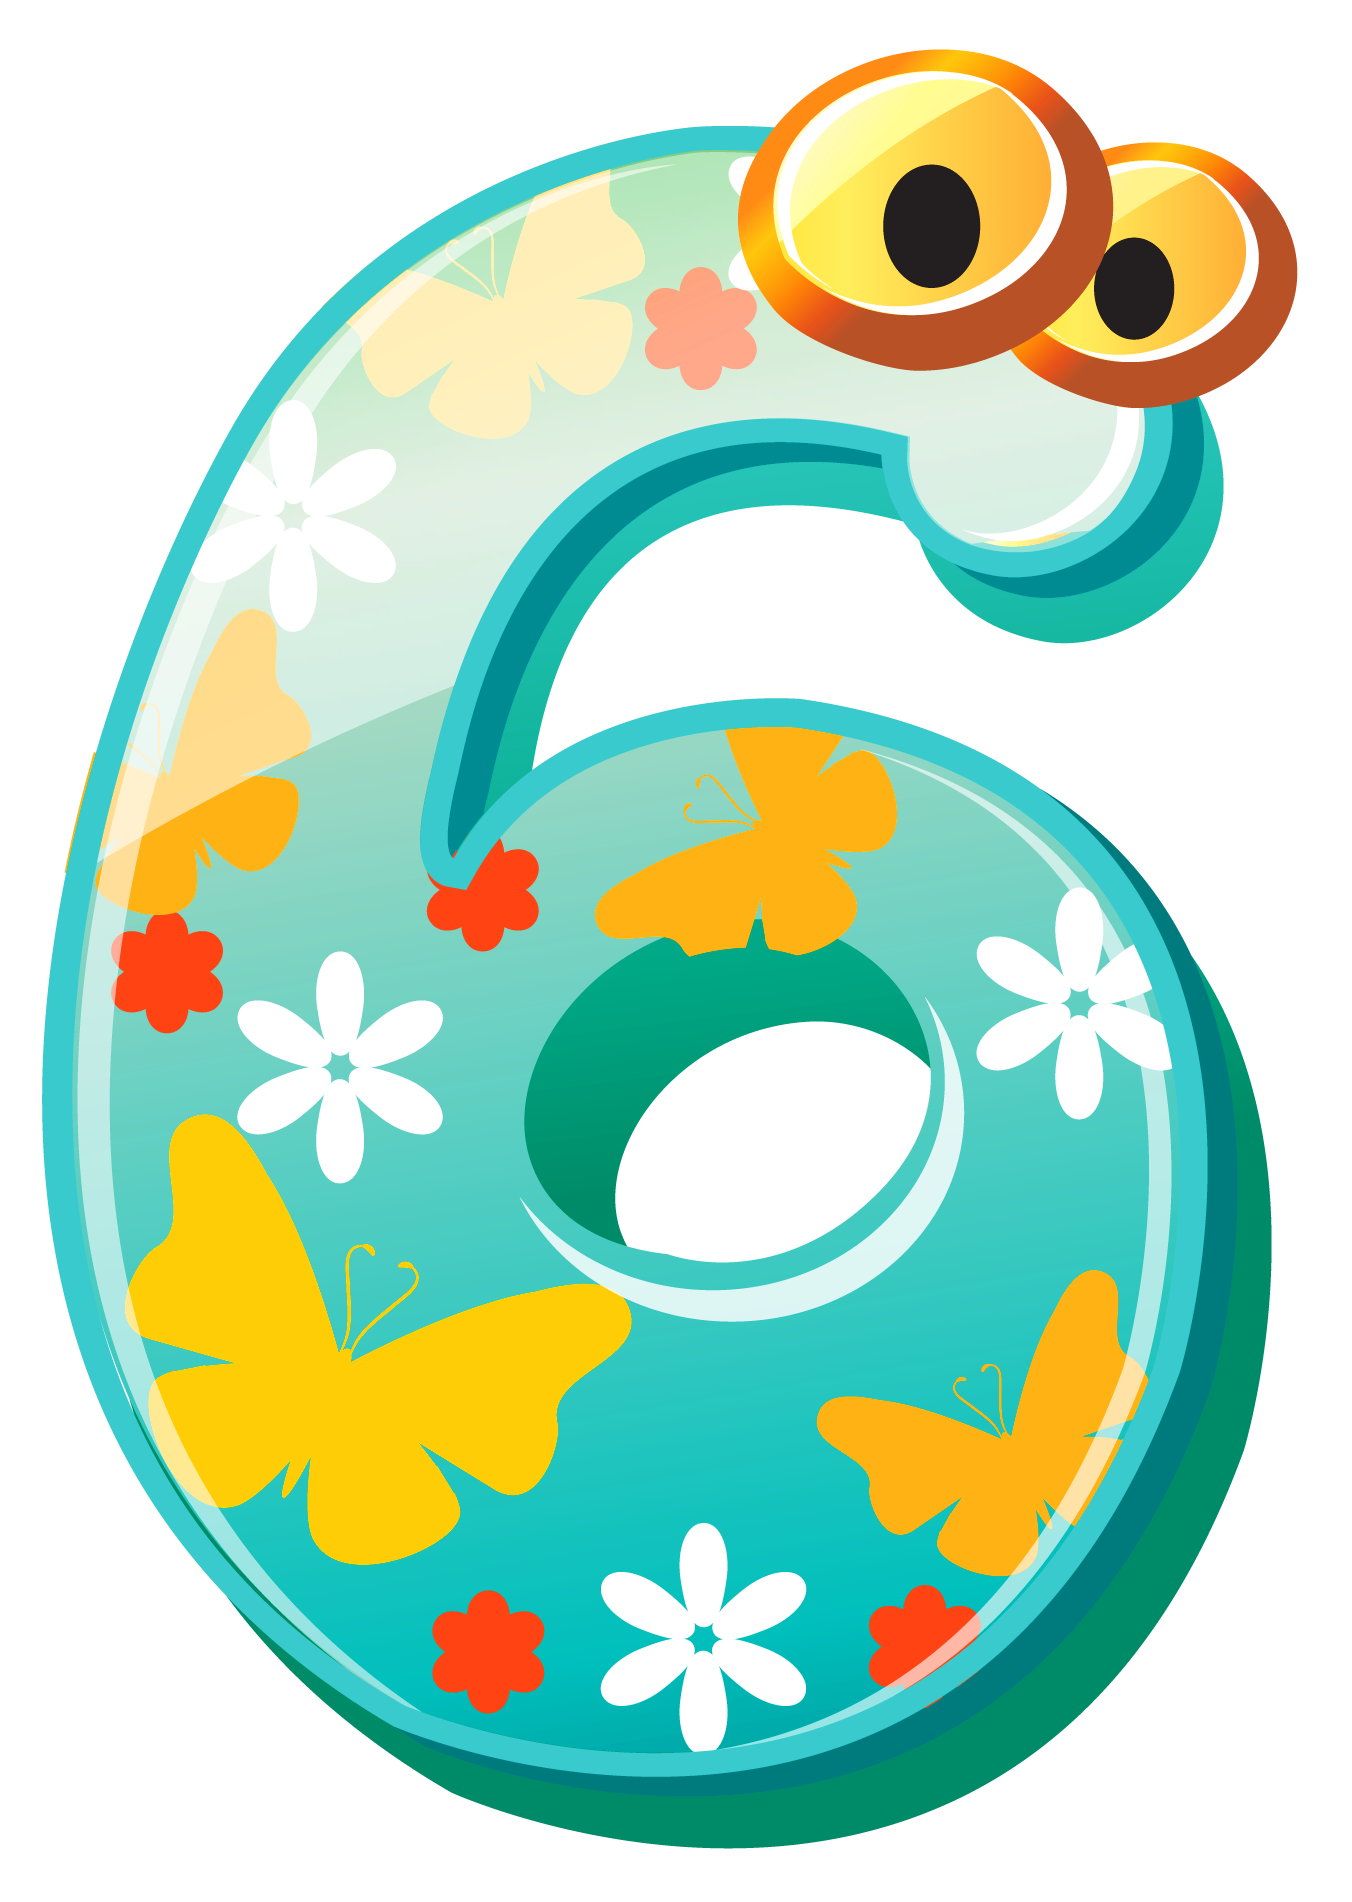 Numbers number six image. Heat clipart cute